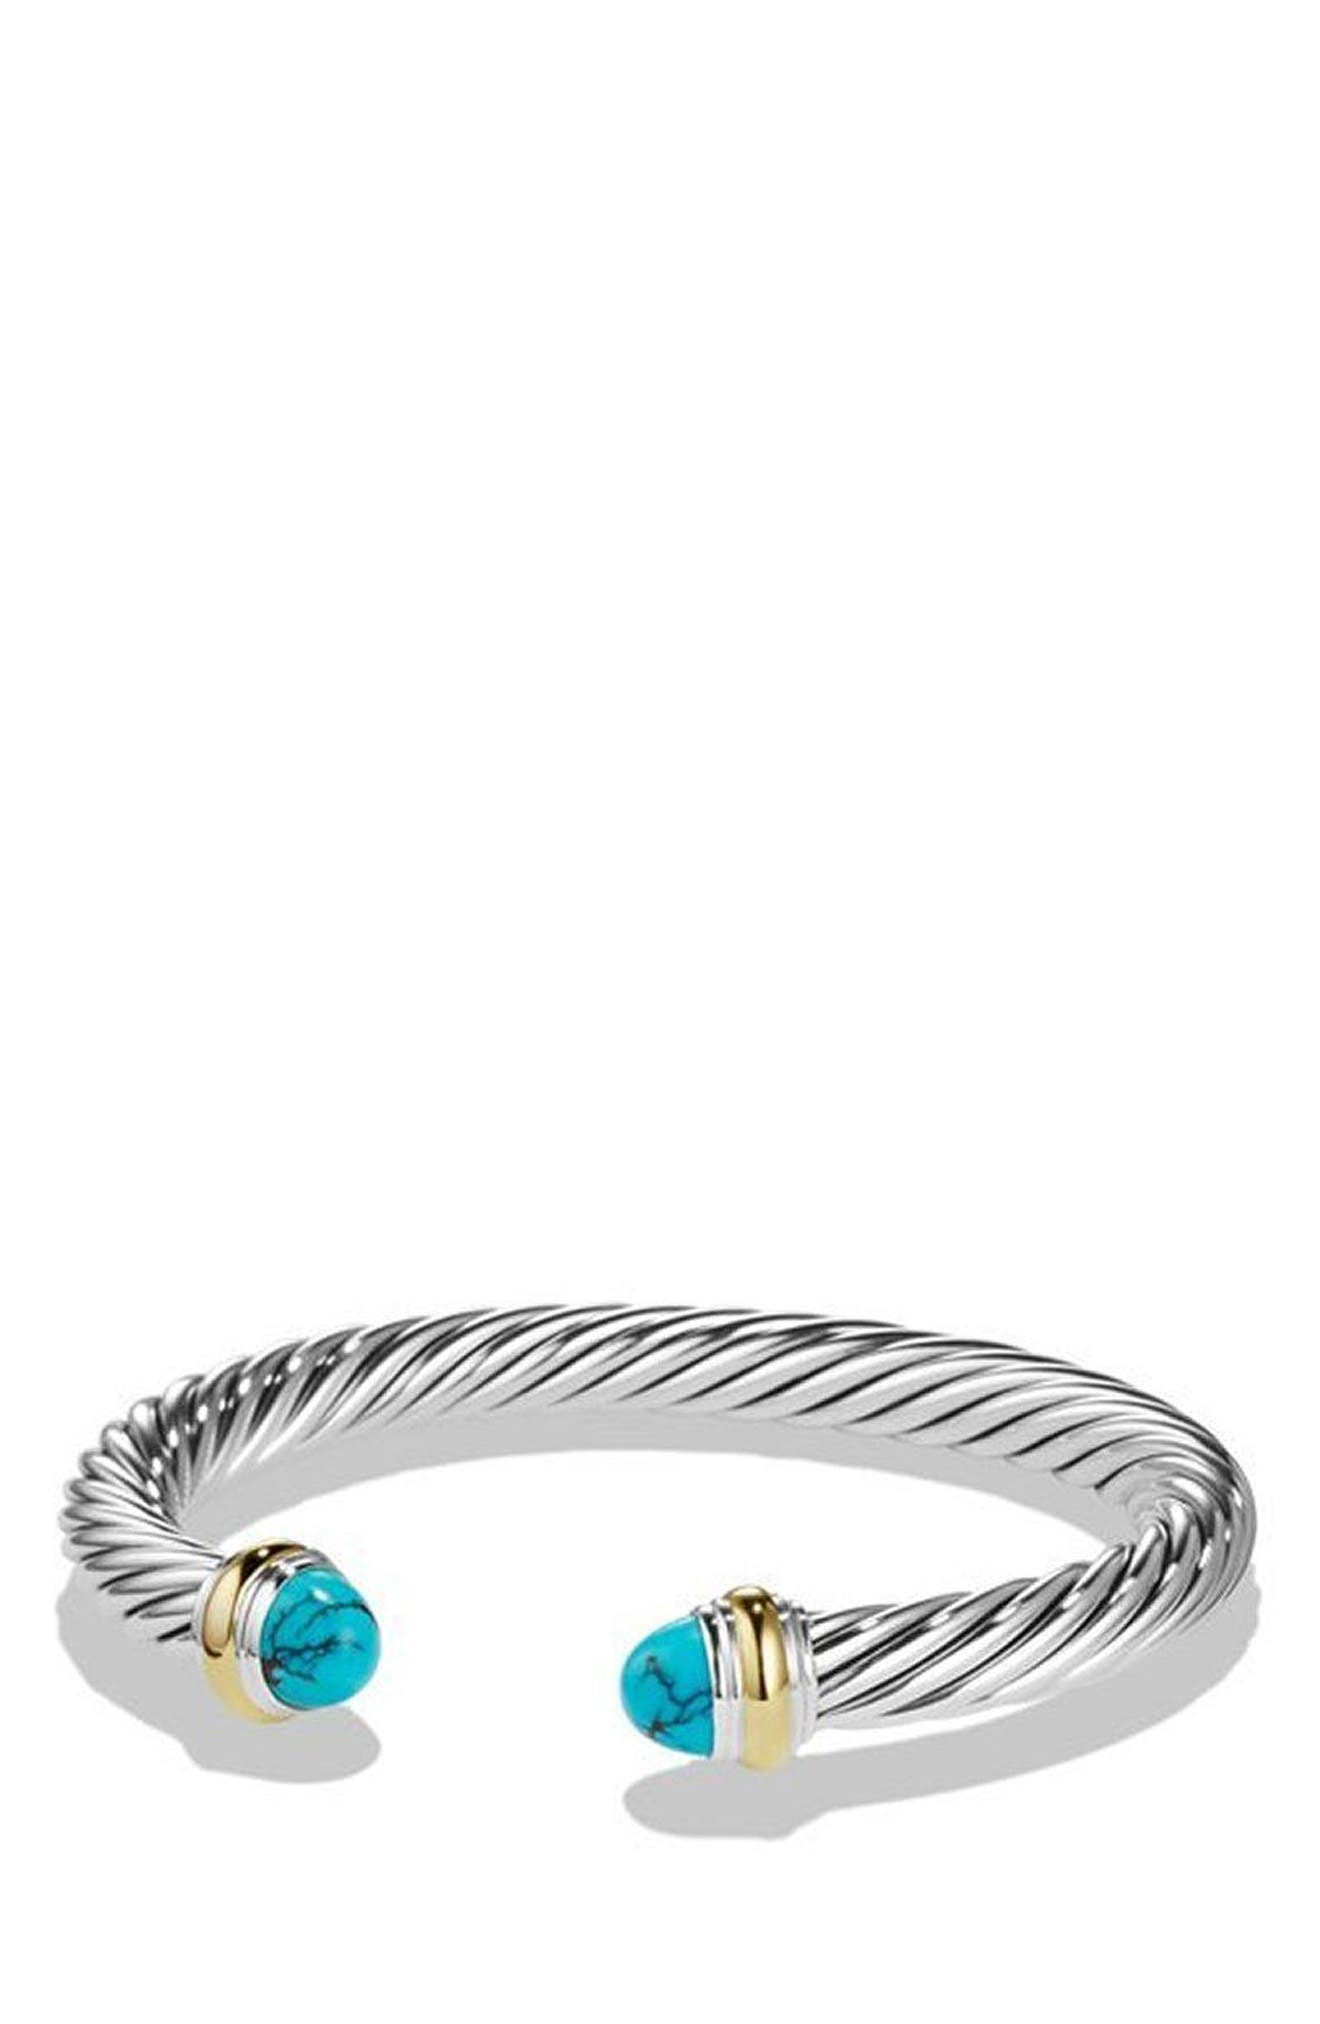 Cable Classic Bracelet with Turquoise and 14K Gold, 5mm,                         Main,                         color, SILVER/ YELLOW GOLD/ TURQUOISE